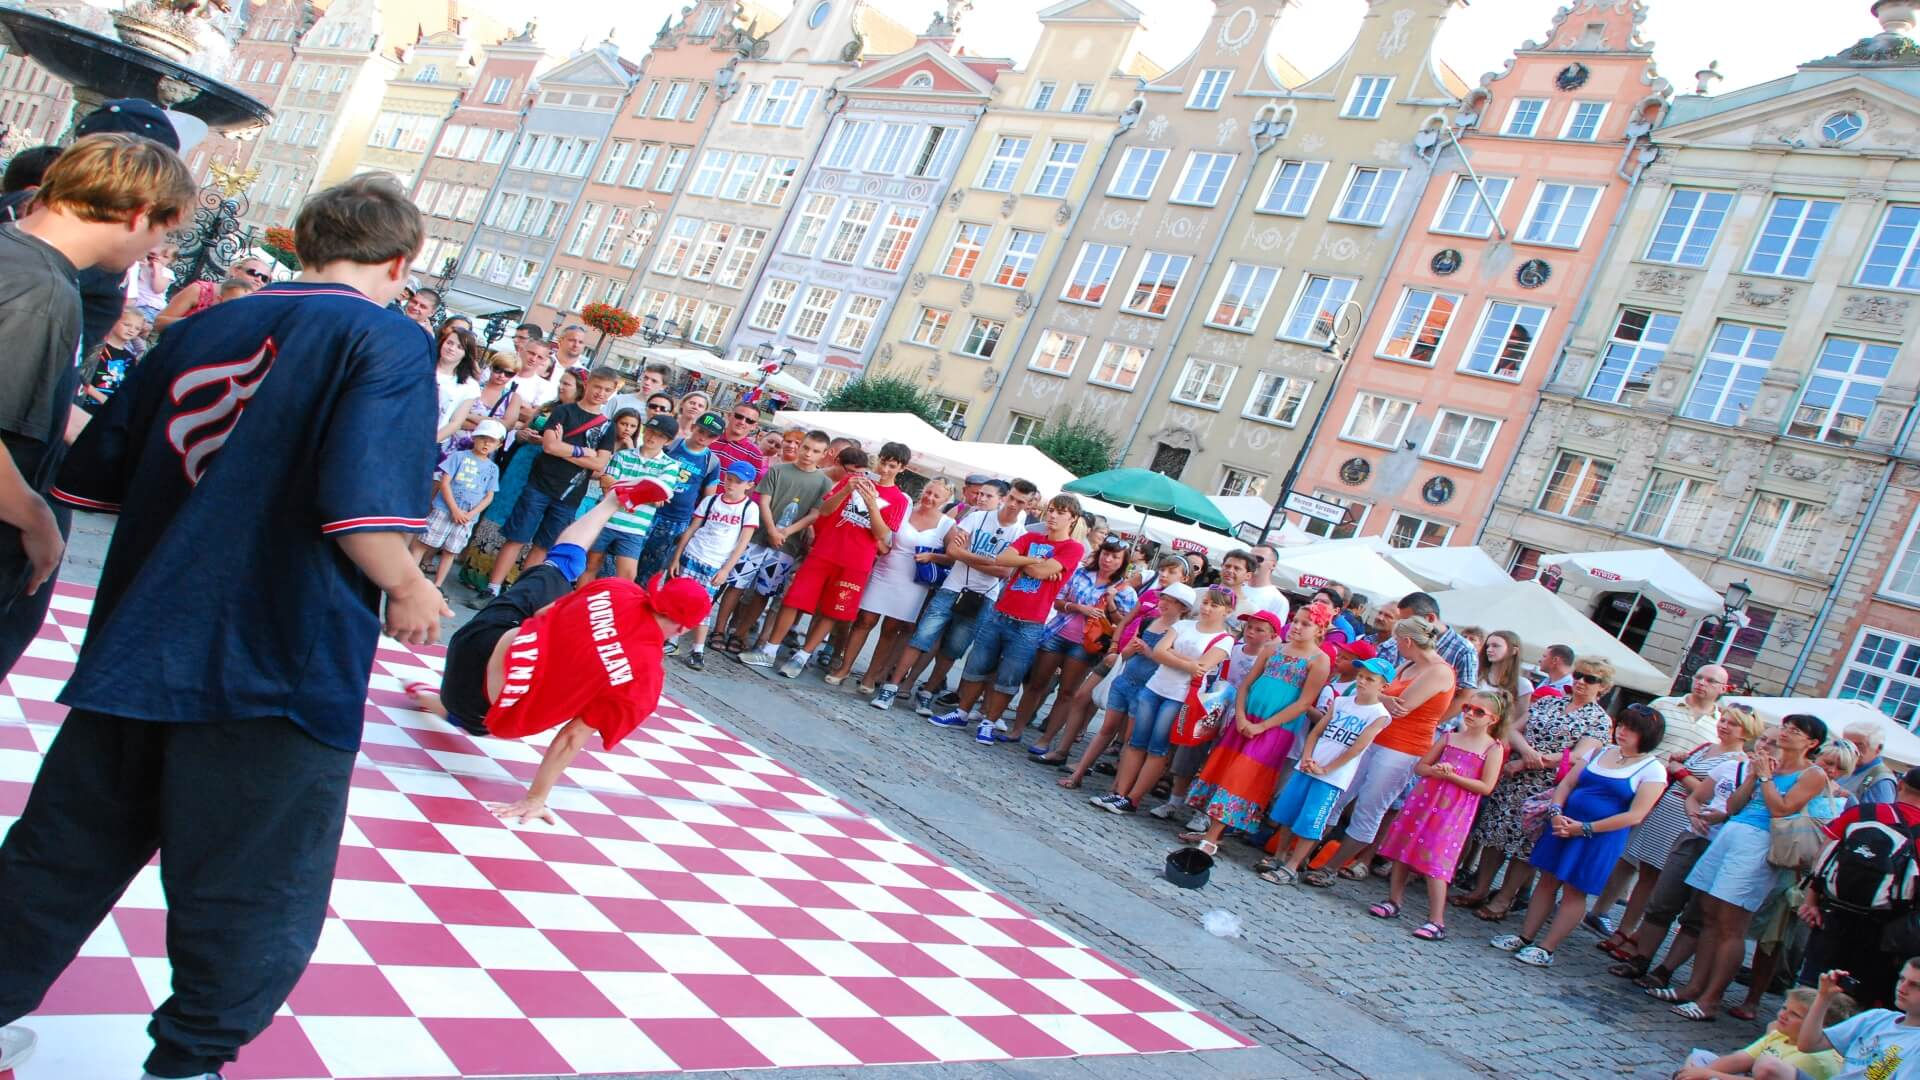 A hip-hop performance during summertime. Lots of artists are performing in the proximity of Neptune's Fountain and Artus Court. On the background you have the historical houses owned by the Polish kings.